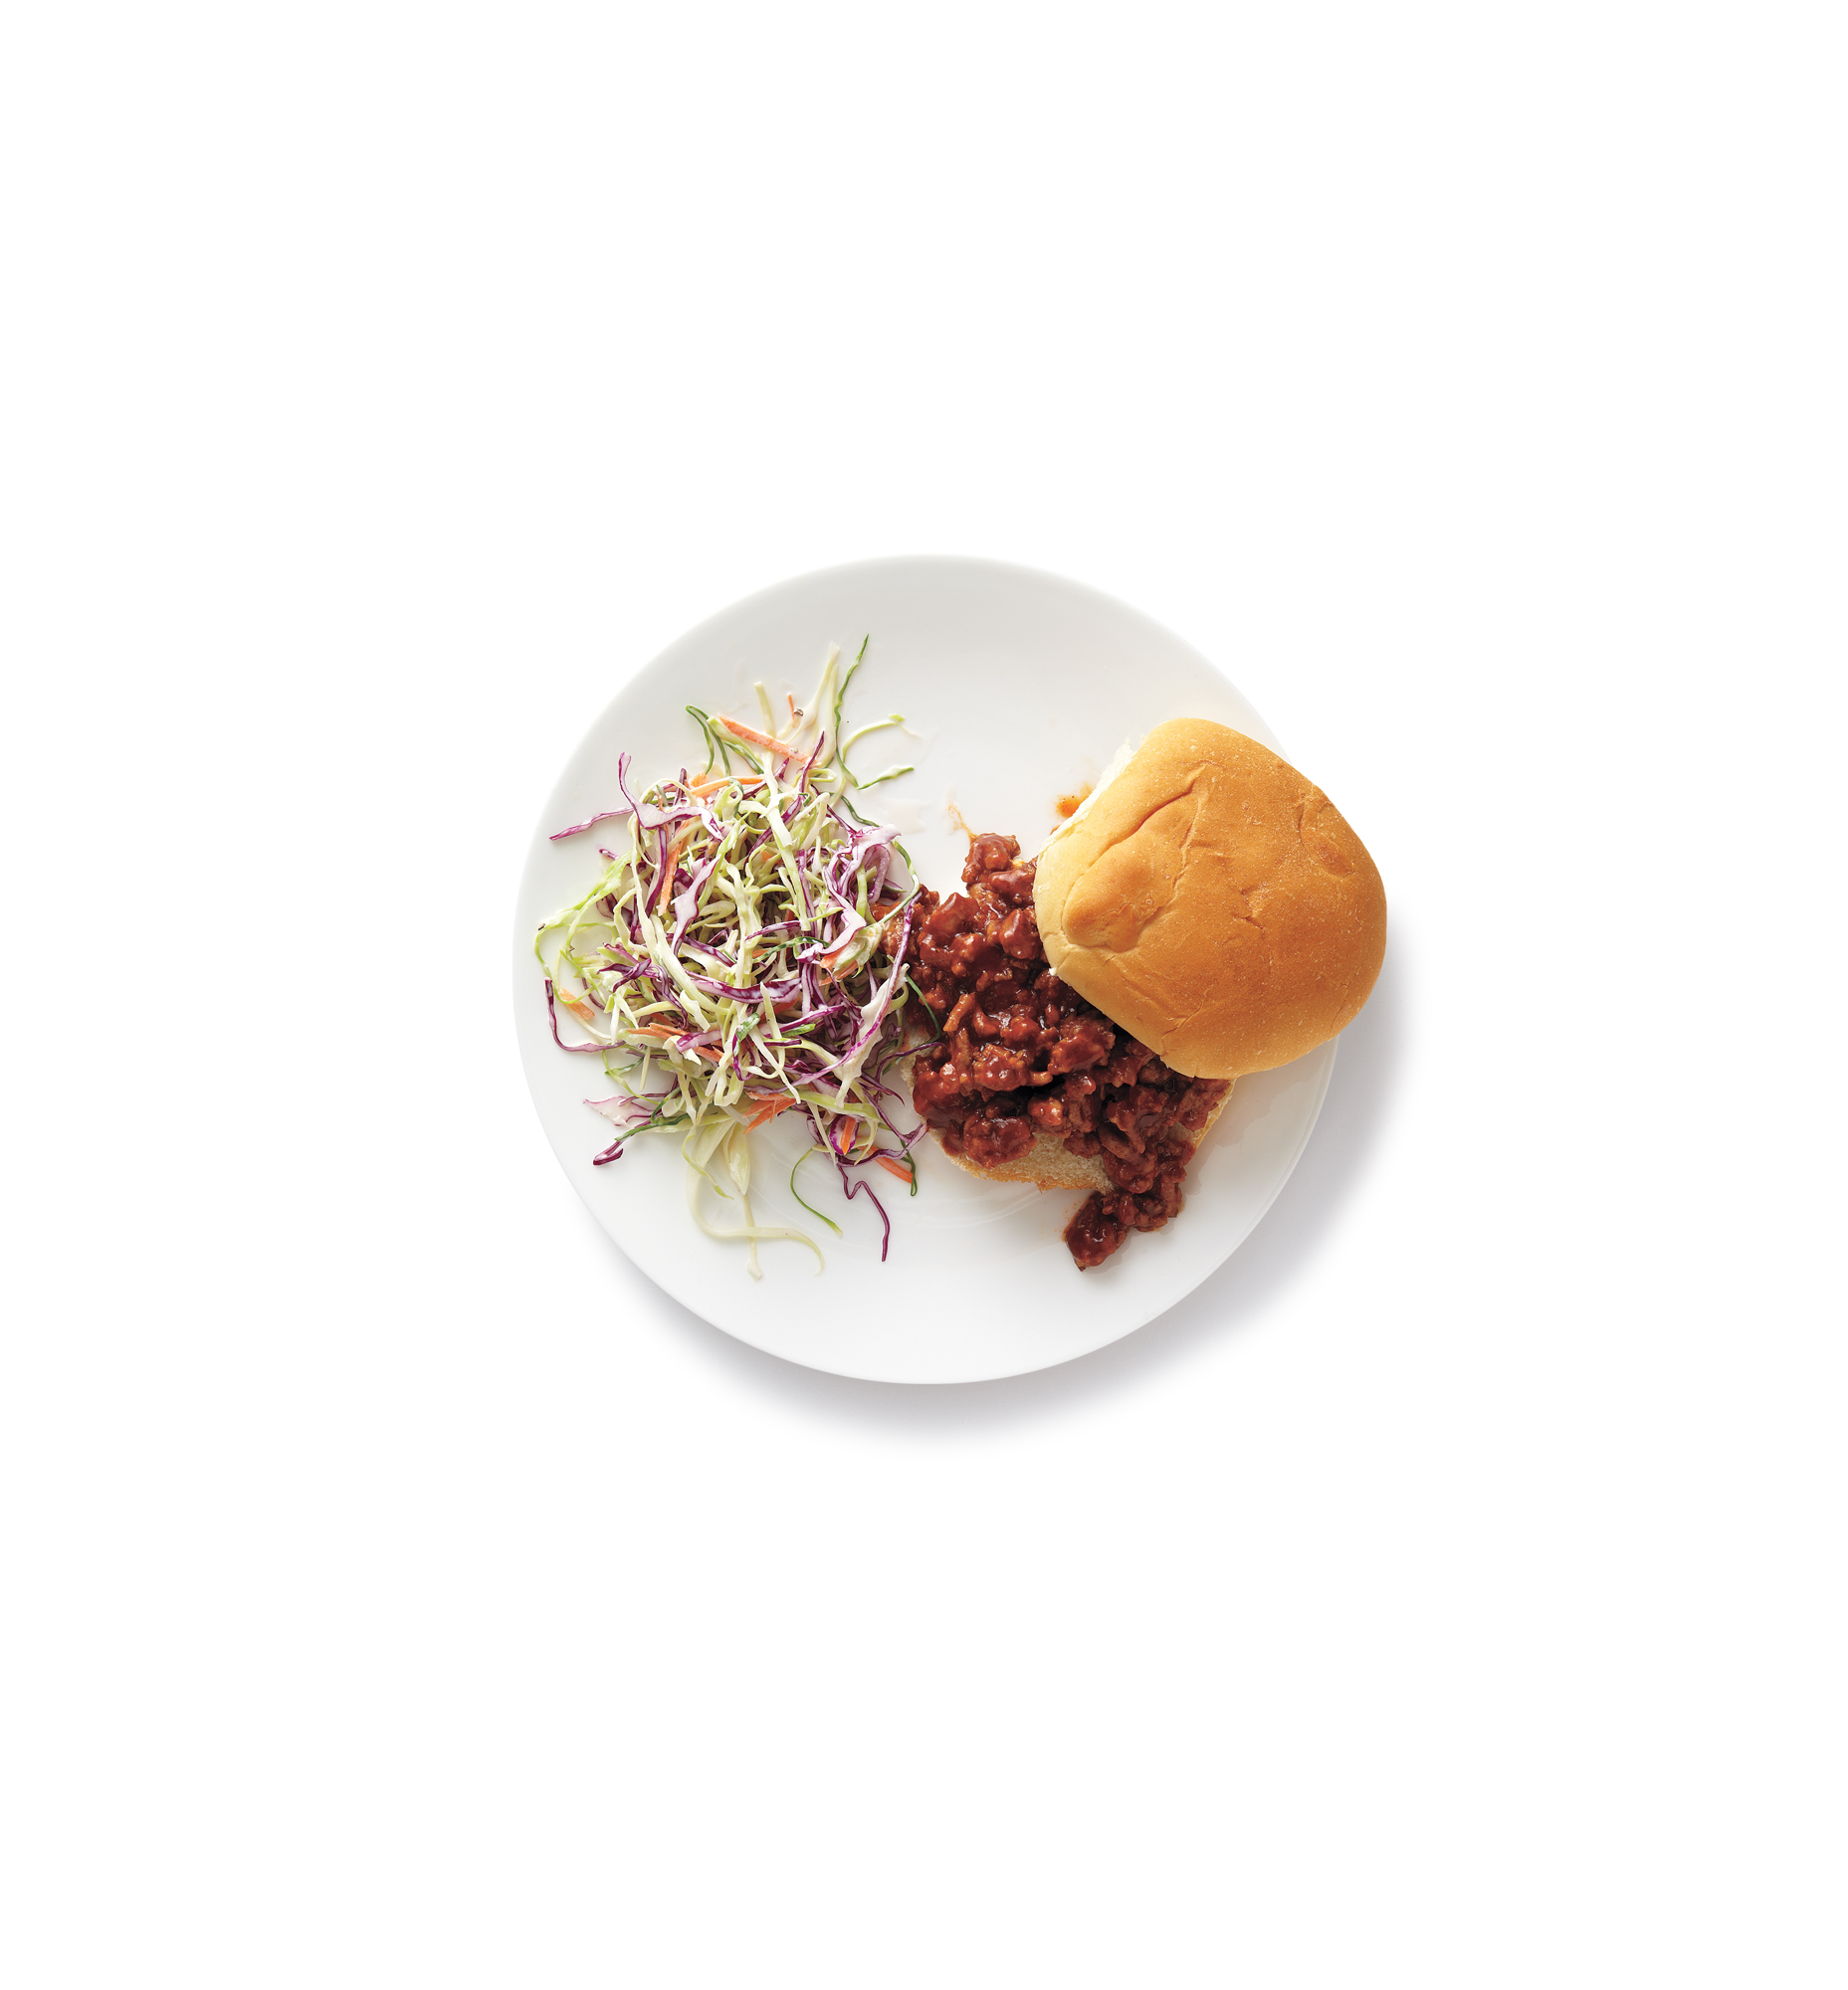 Turkey Sloppy Joes With Coleslaw, one of Real Simple's great ground turkey recipes